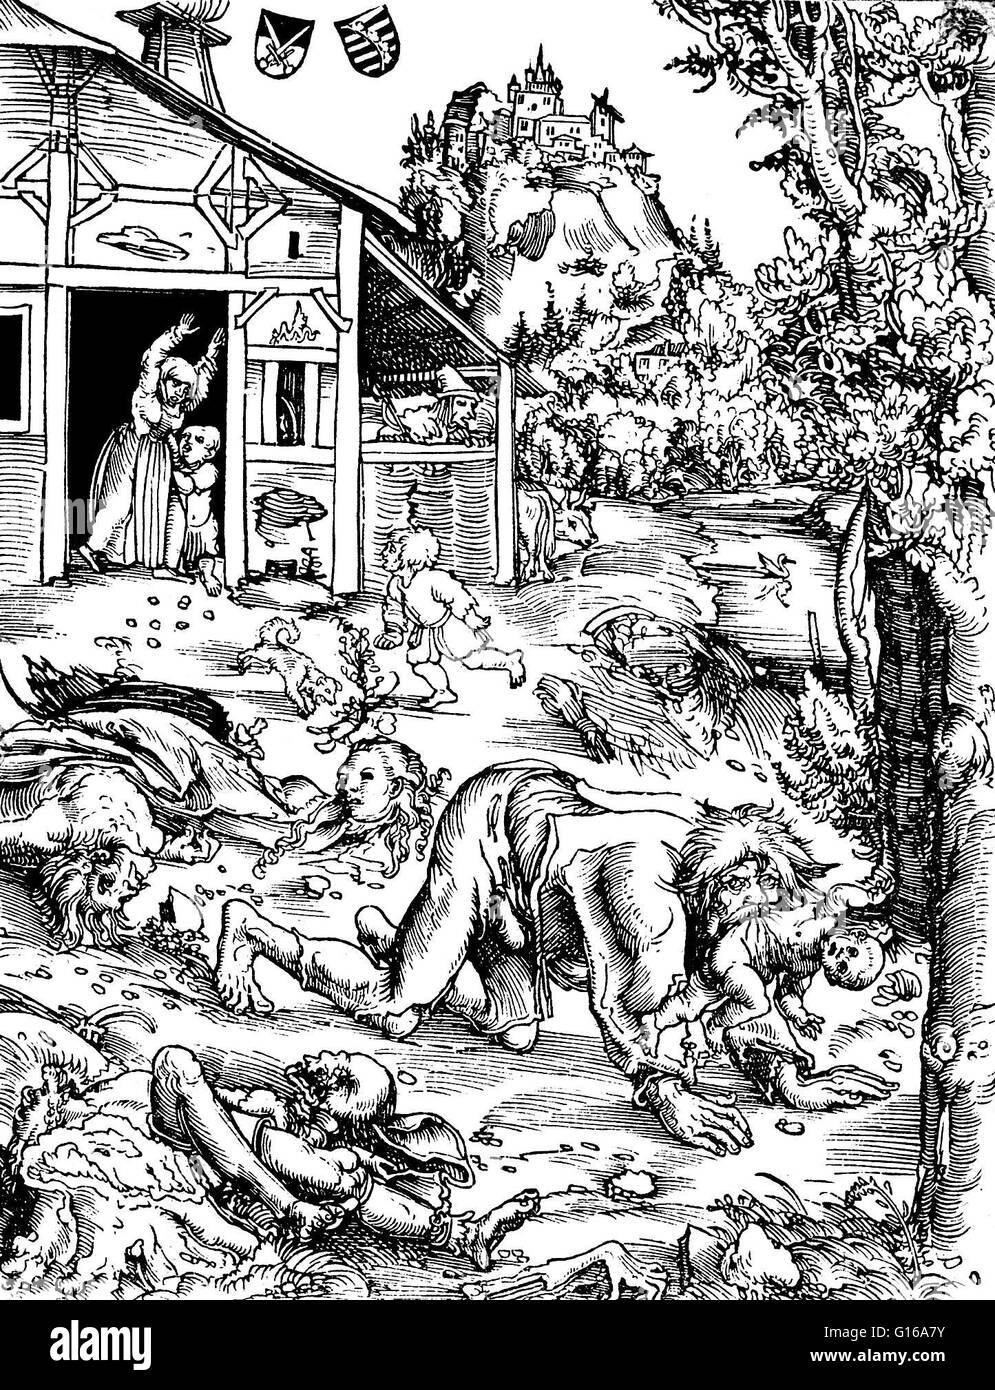 Woodcut of a werewolf attack, by Lucas Cranach the Elder, 1512. A werewolf,  in European folklore, is a man who turns into a wolf at night and devours  ...